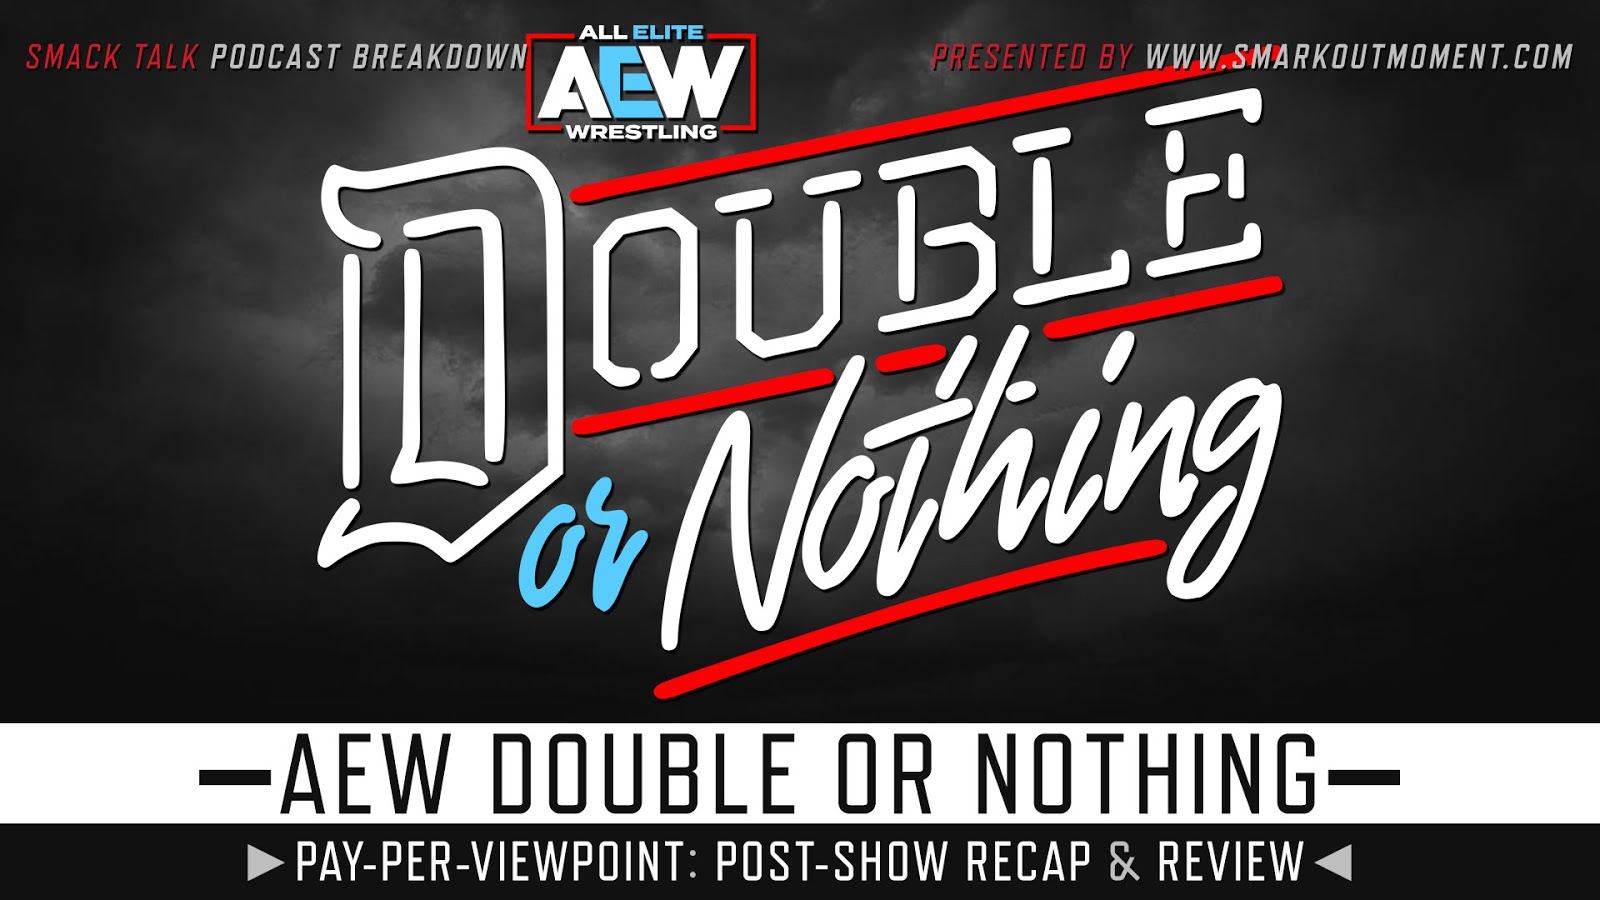 AEW Double or Nothing 2020 Recap and Review Podcast